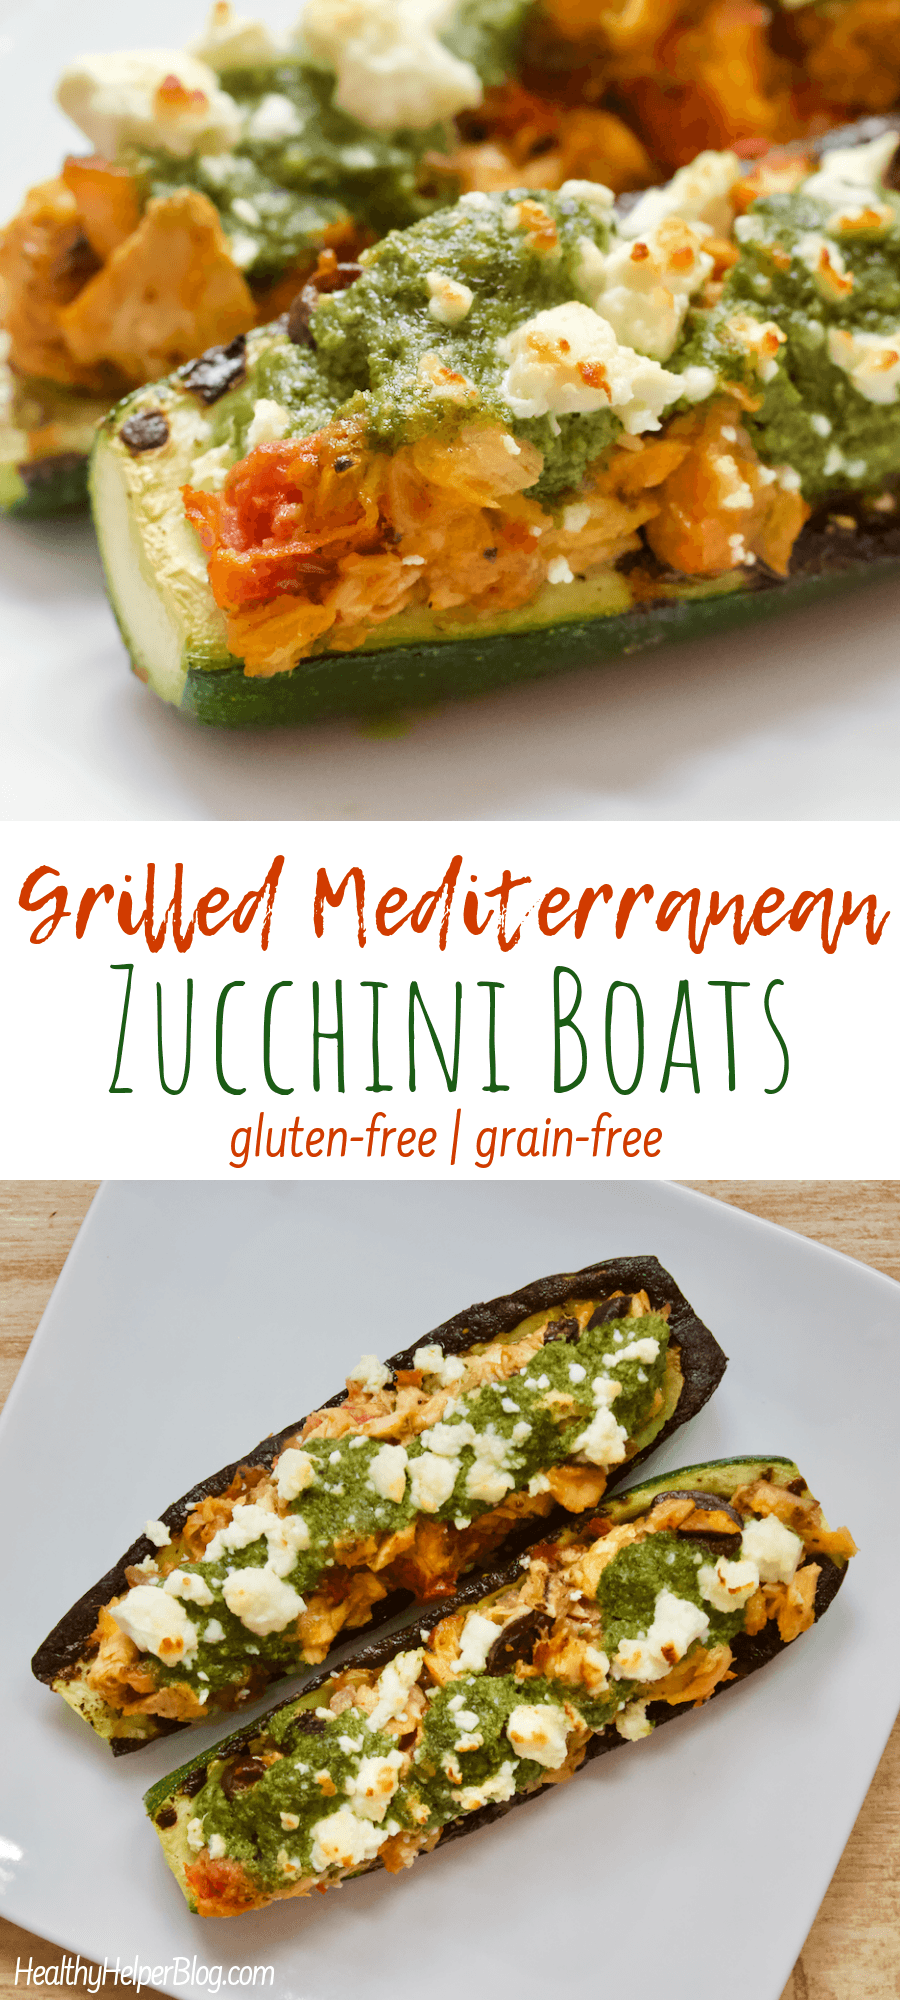 Grilled Mediterranean Zucchini Boats Summertime Means It S Grilling Season Fire Up The Grill And Escape To A Mediterranean O Zucchini Boats Healthy Zucchini